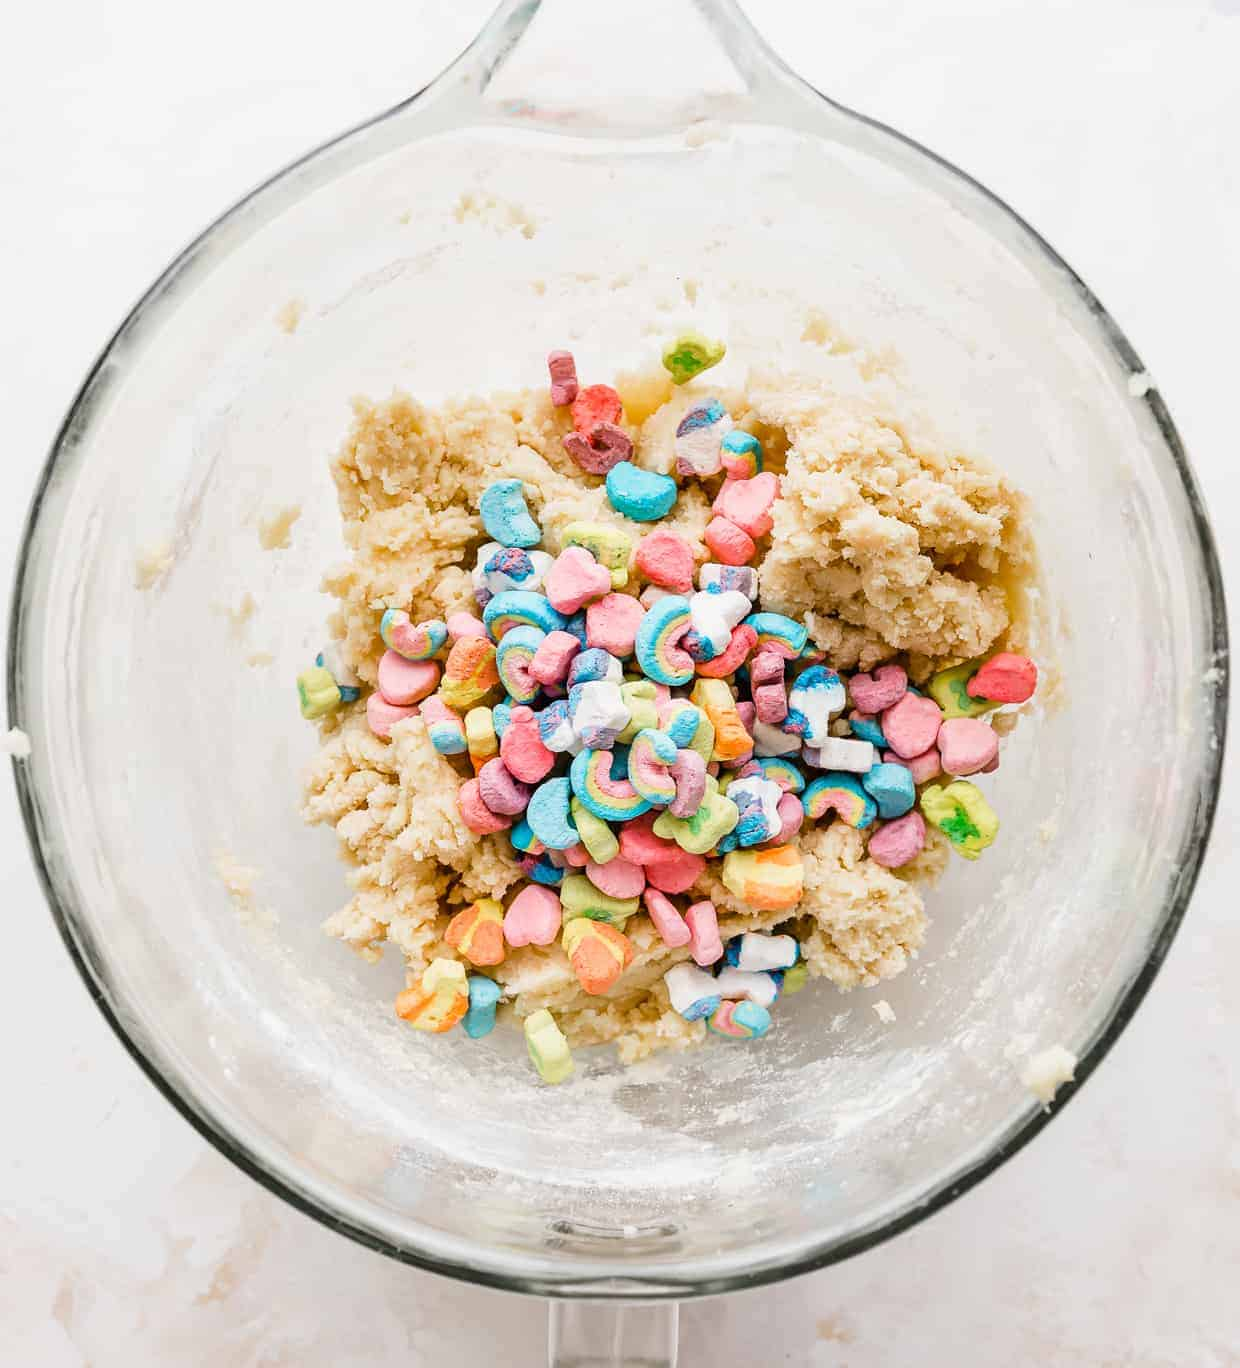 Lucky Charms cereal marshmallows in a glass bowl against a white background.